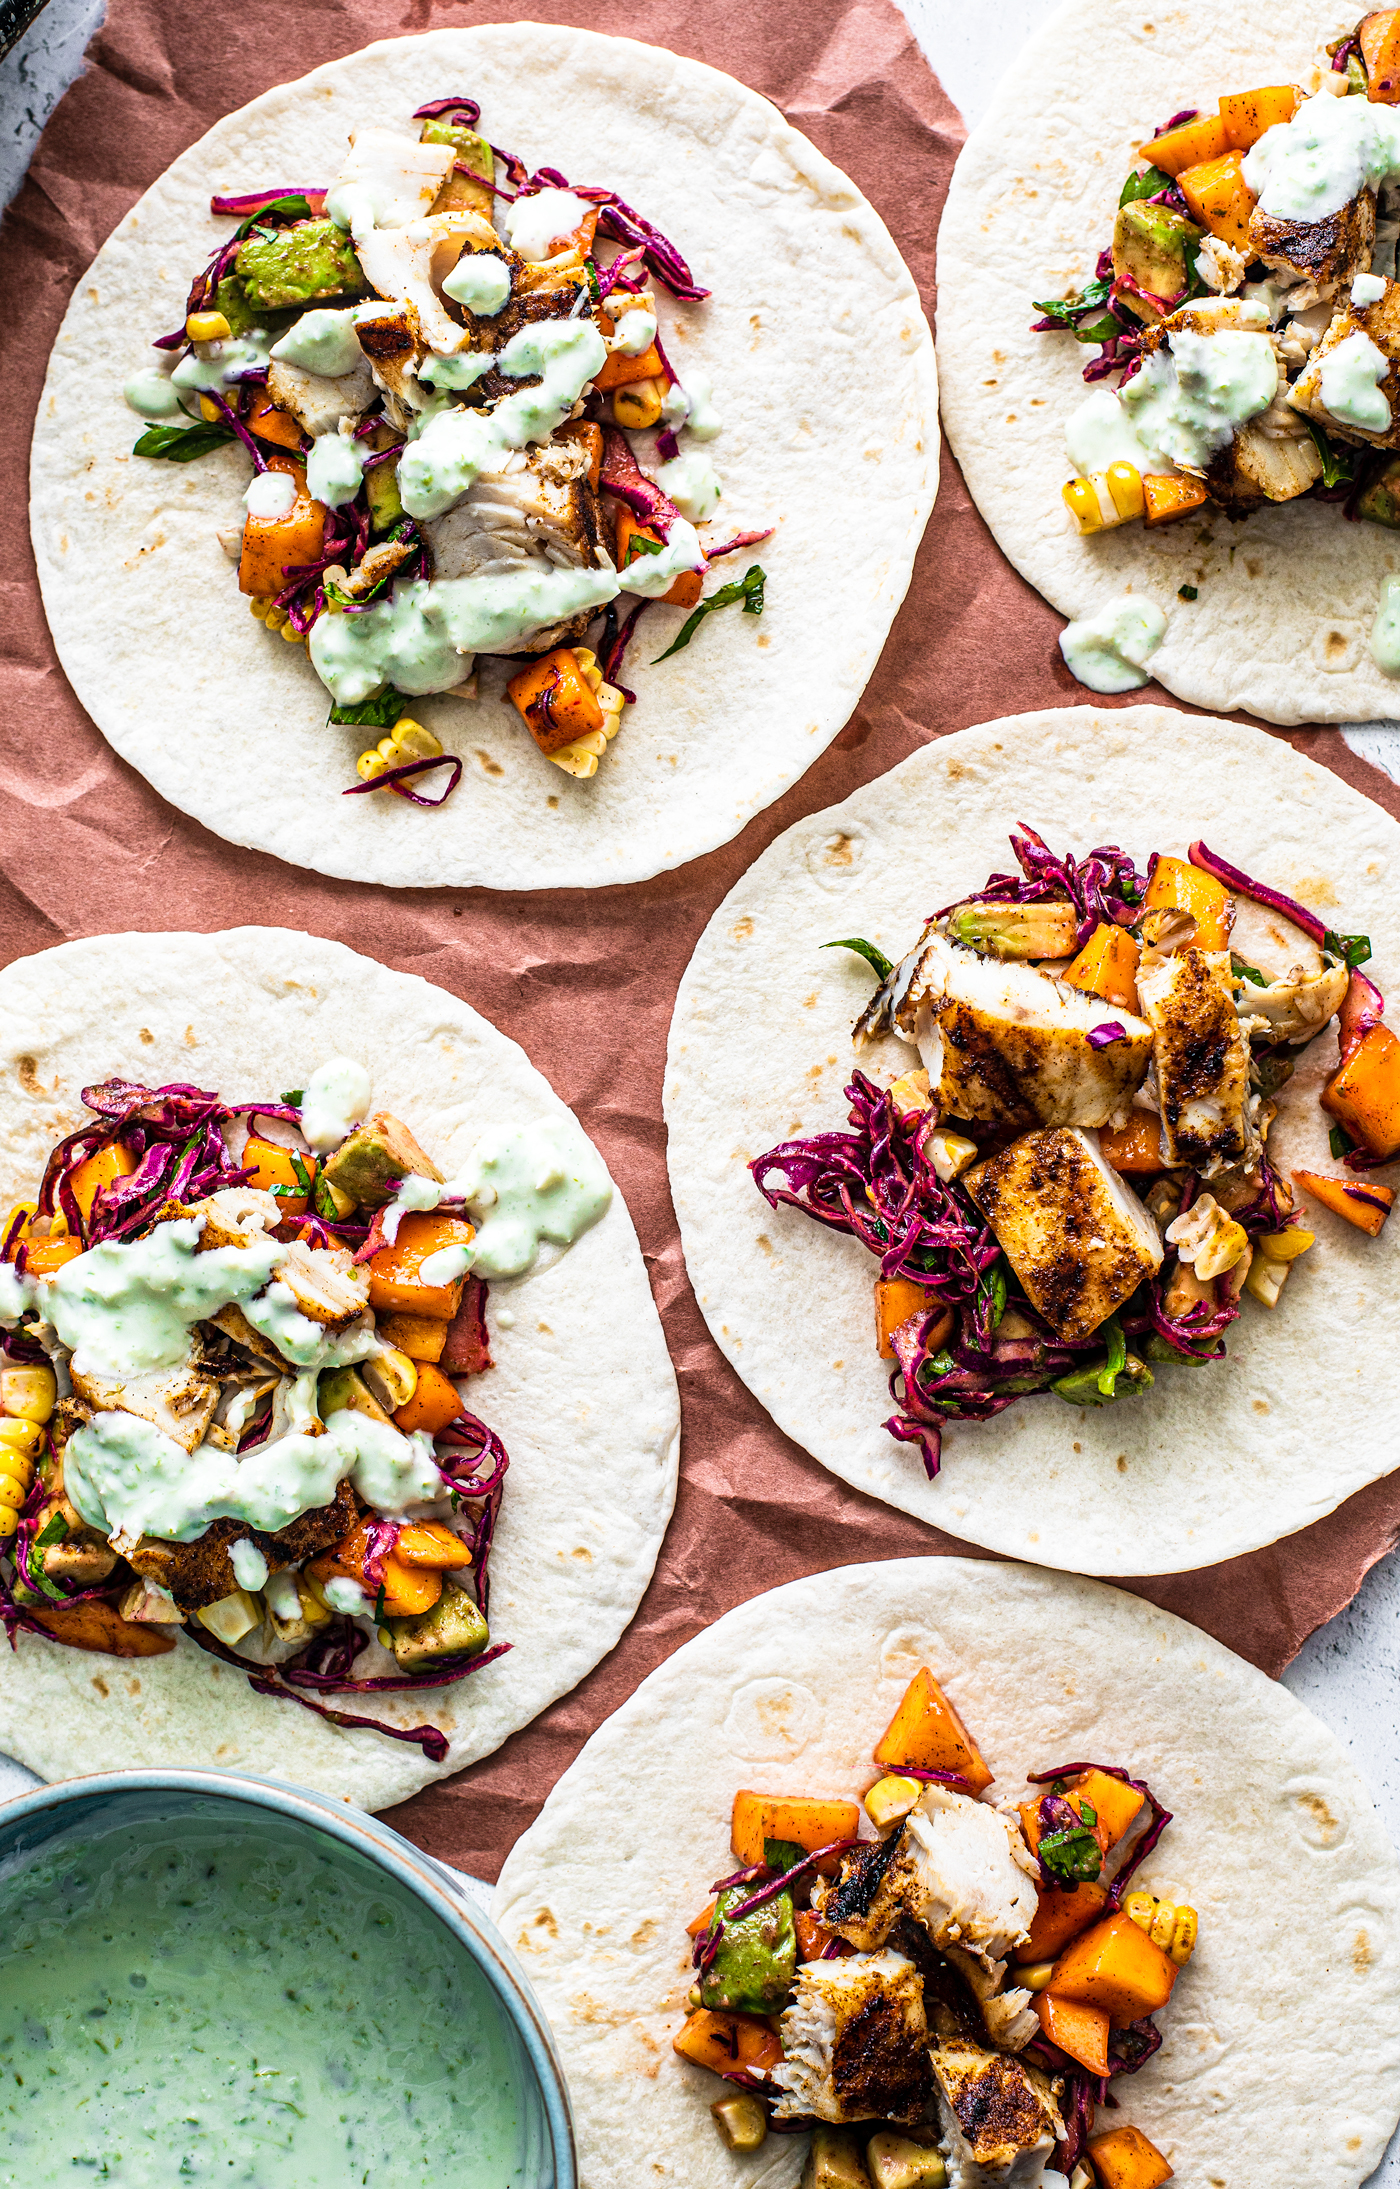 A flatlay of colorful fish tacos, some drizzled with jalapeno sauce.